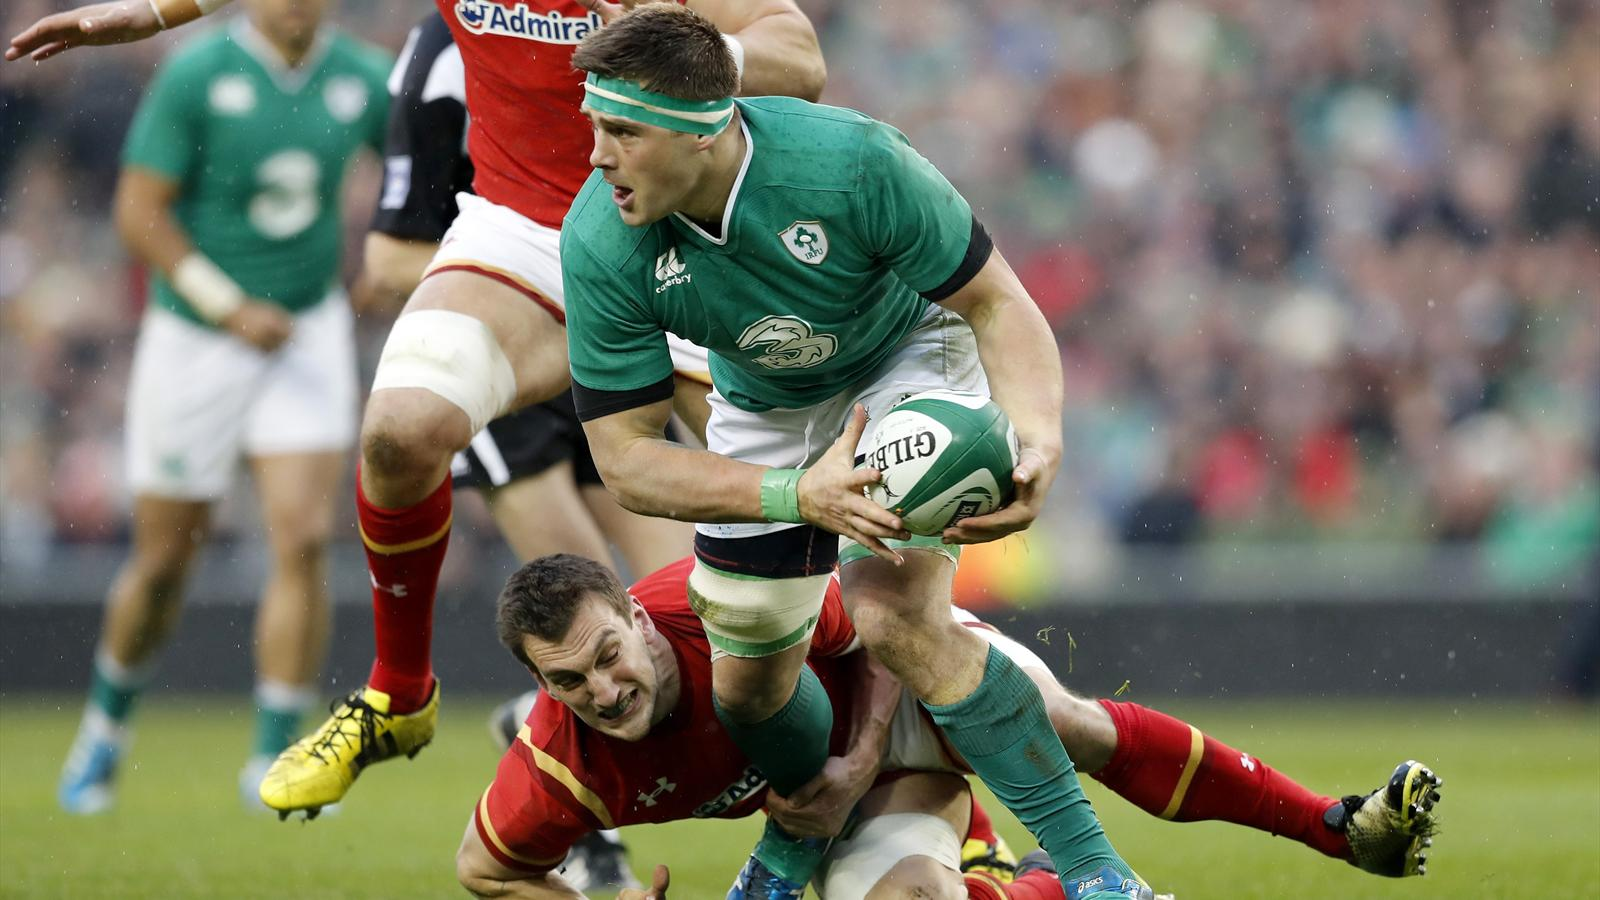 Wales' Sam Warburton tackles Ireland's CJ Stander